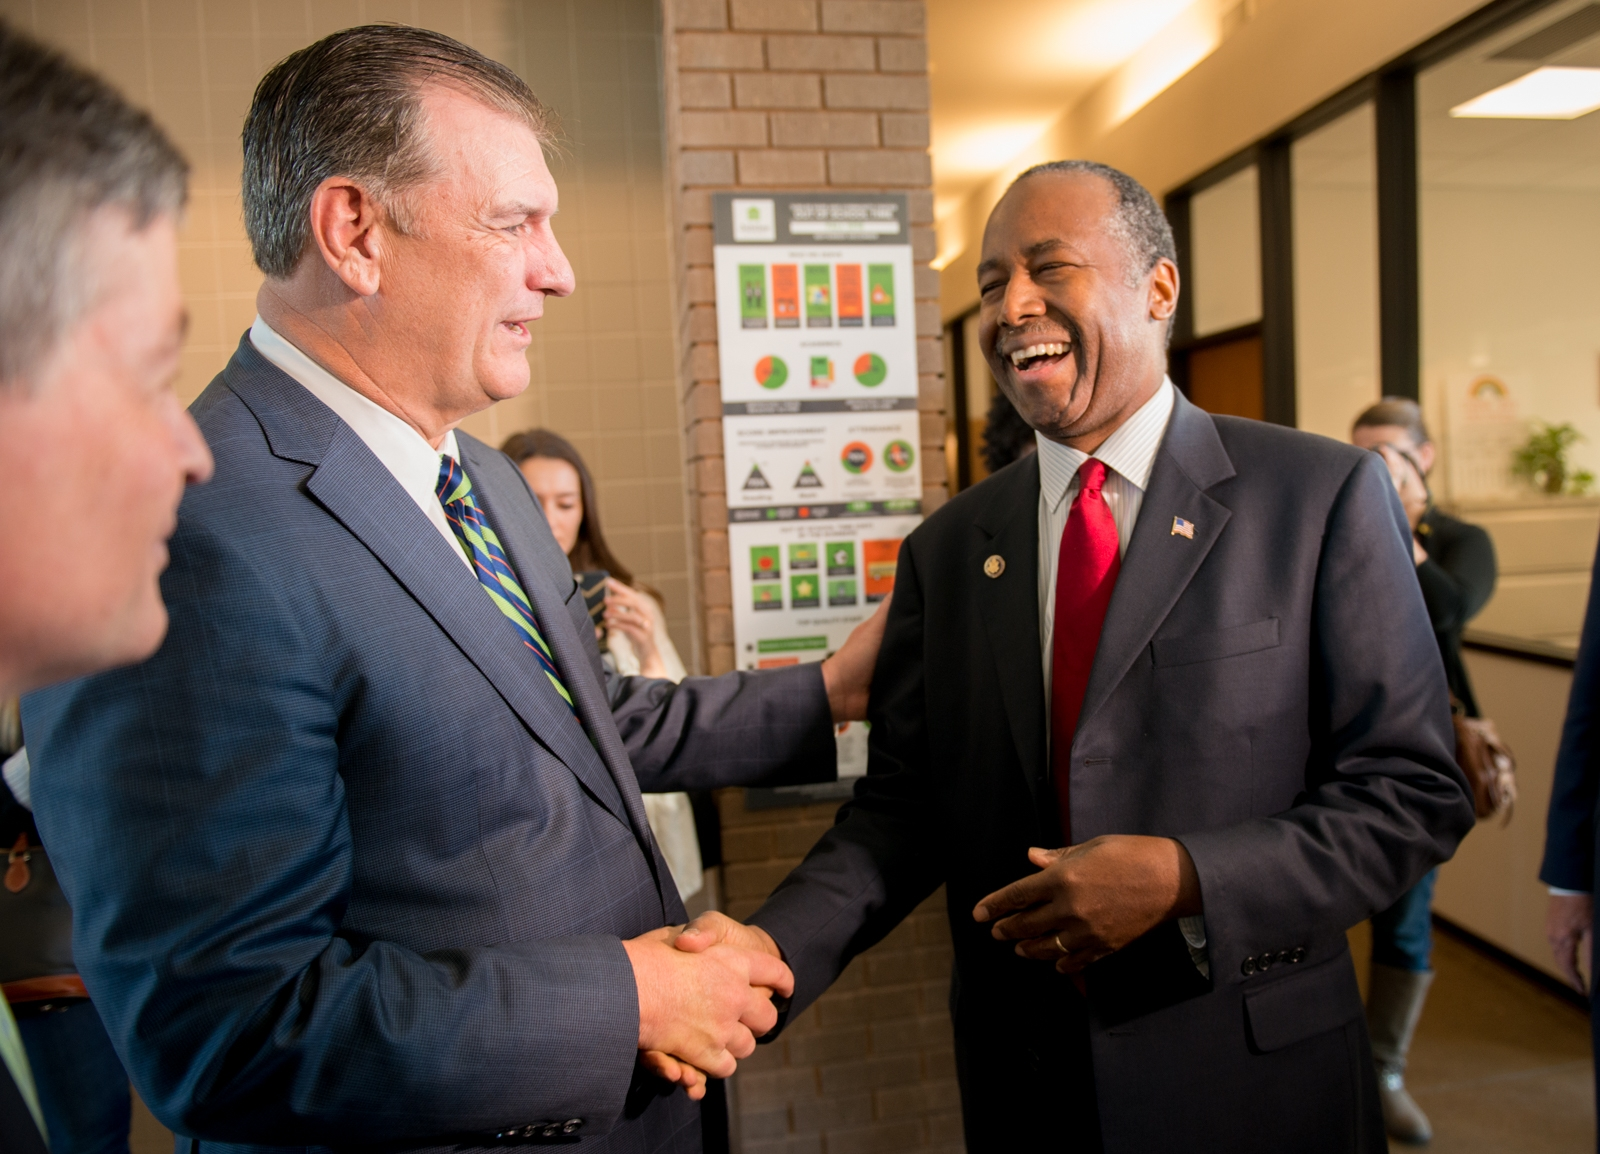 Congressman Jeb Hensarling, Mayor Mike Rawlings, and HUD Secretary Dr. Ben Carson visit Jubilee to learn more about best practices in urban development (3/31/2017)